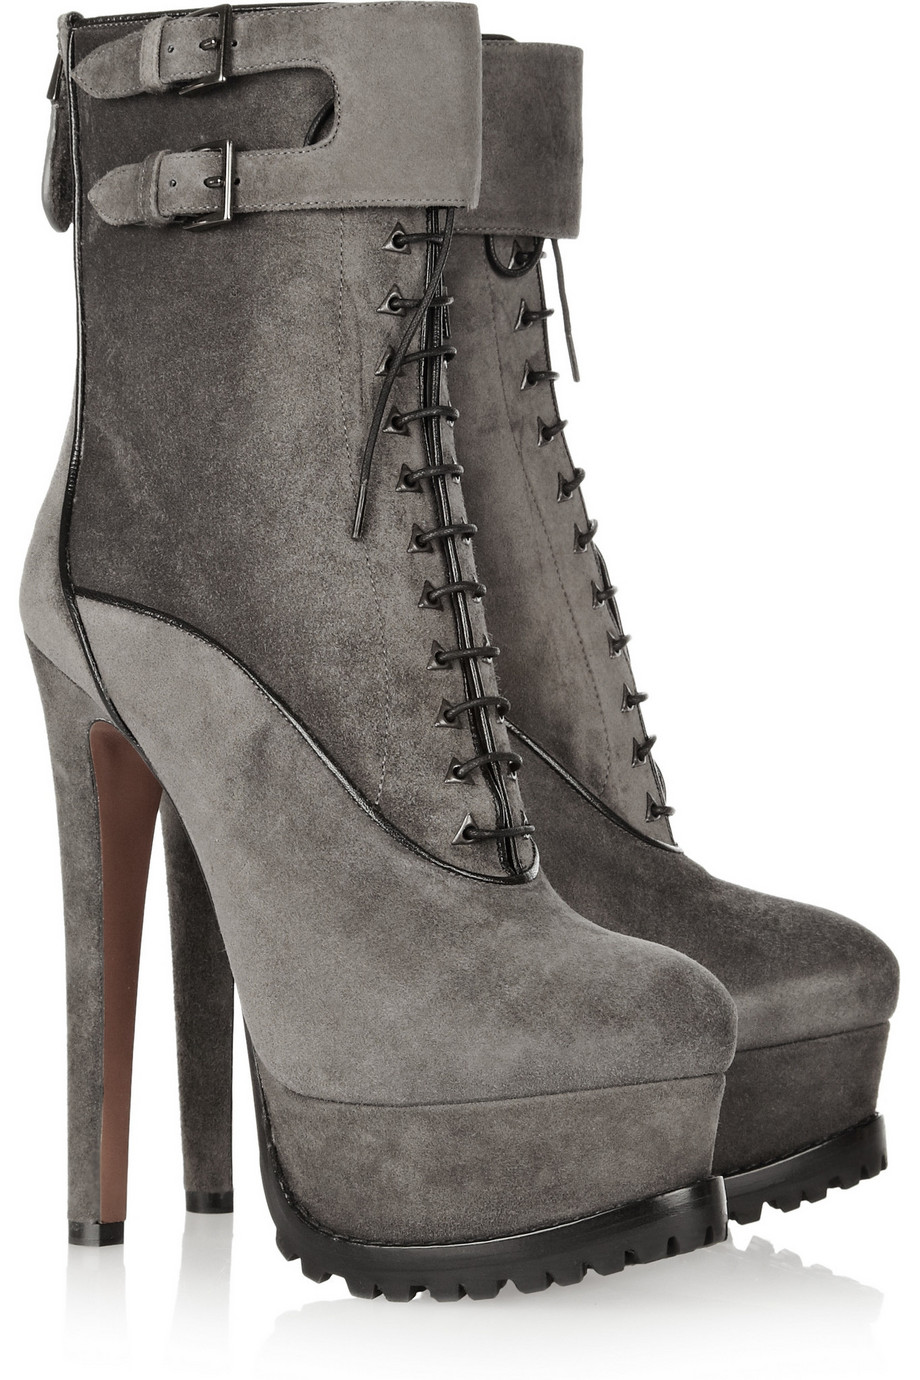 Alaia Boots Alaa Click to zoom